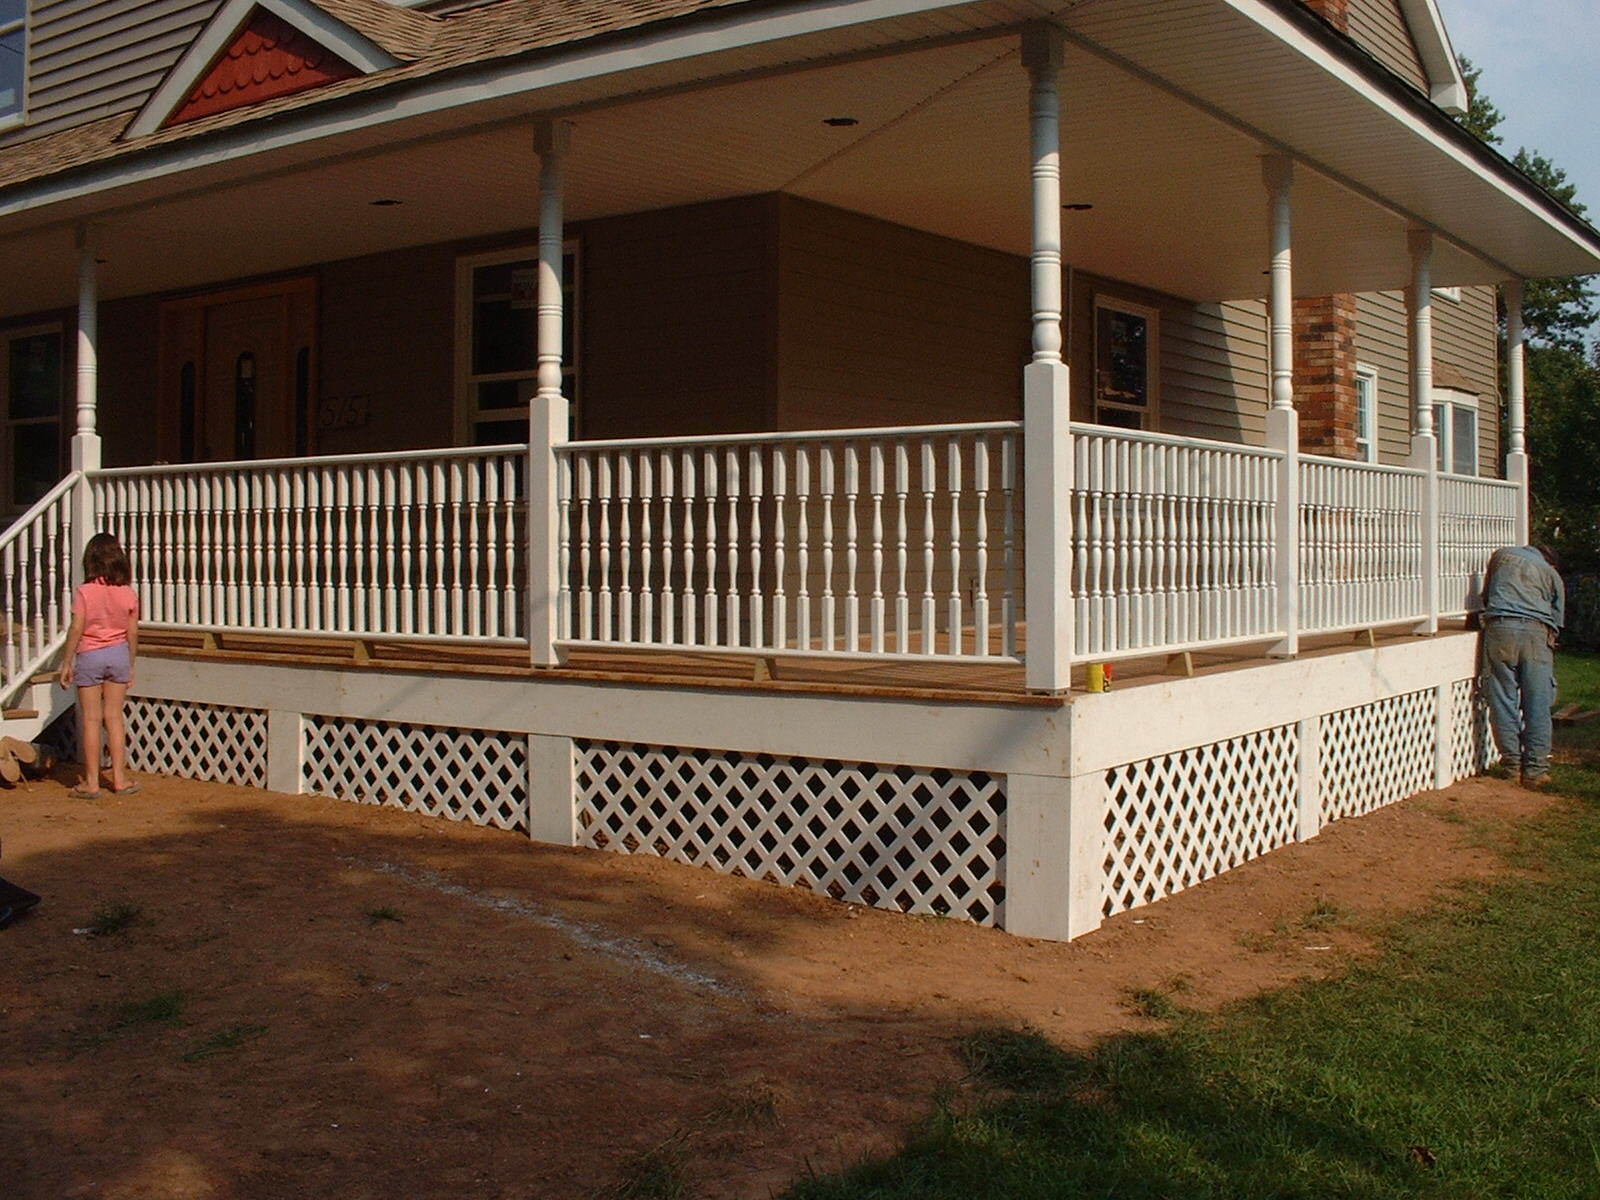 The lattace and pine trim really finish off the porch.